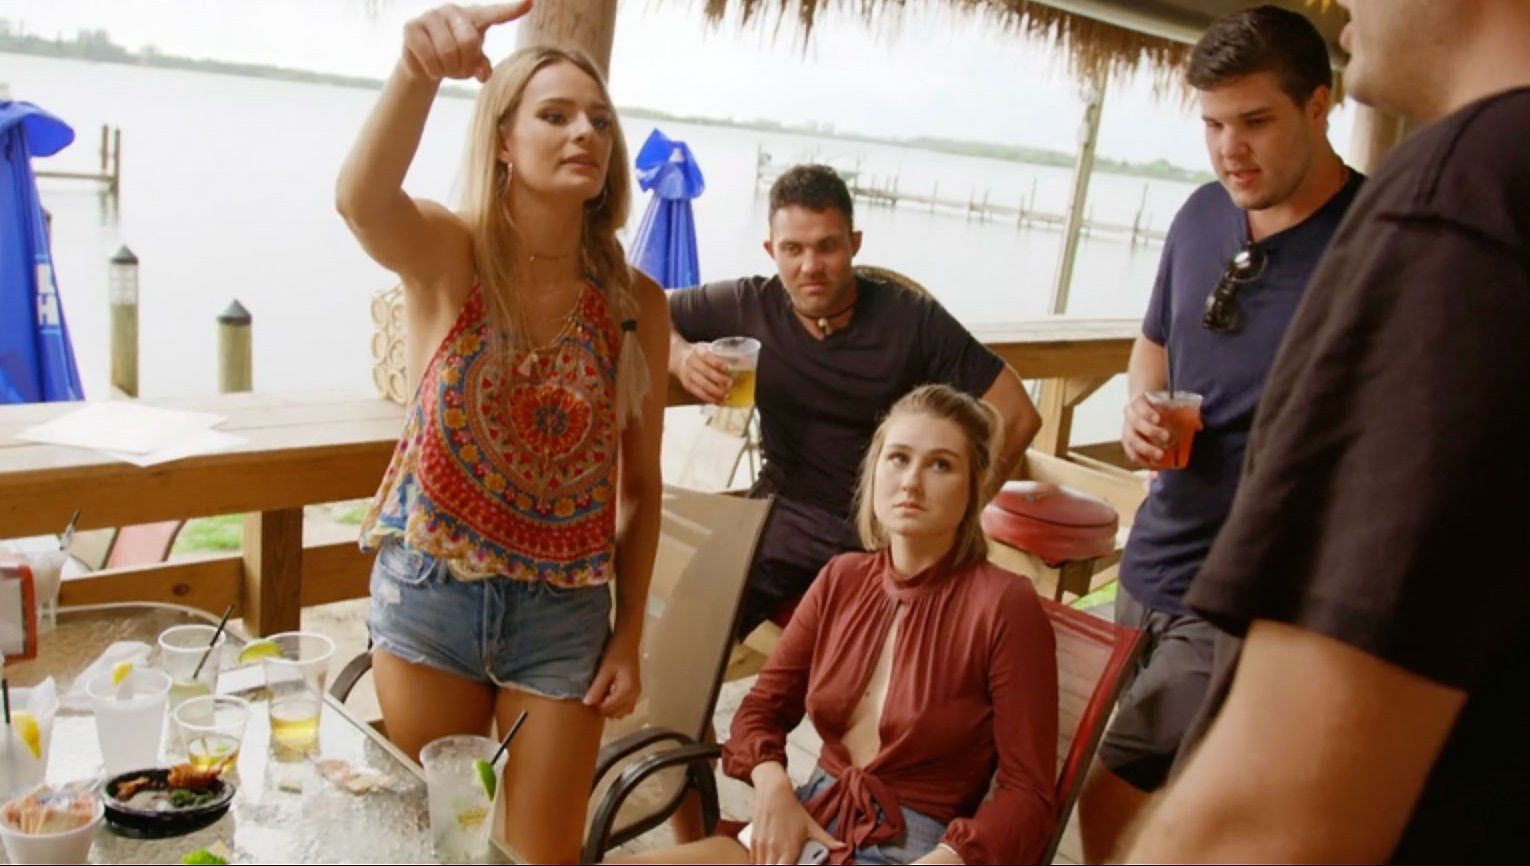 Siesta Key's Juliette Porter on 'Toxic' Relationship With Alex, What the Cameras Didn't Show and Where They Stand Today